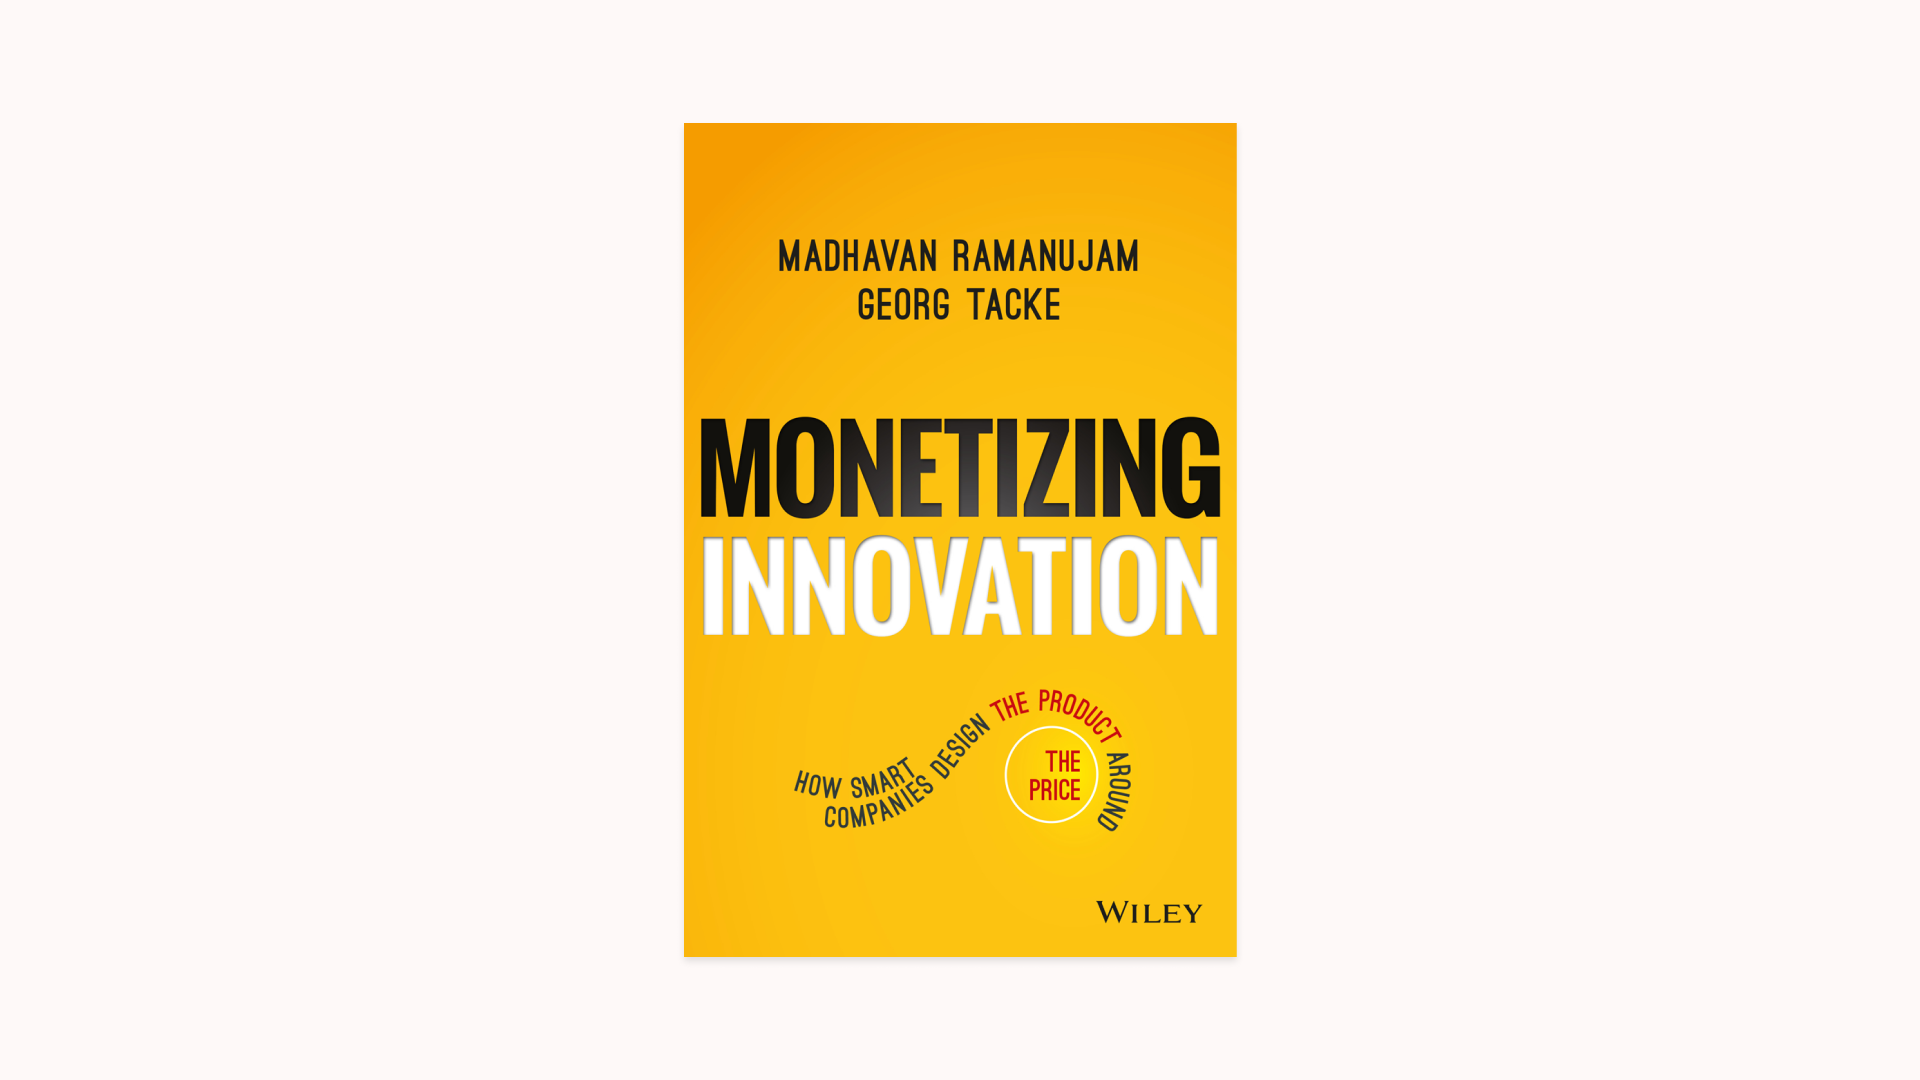 Front cover of the book Monetizing Innovation by Madhavan Ramanujam and Georg Tacke